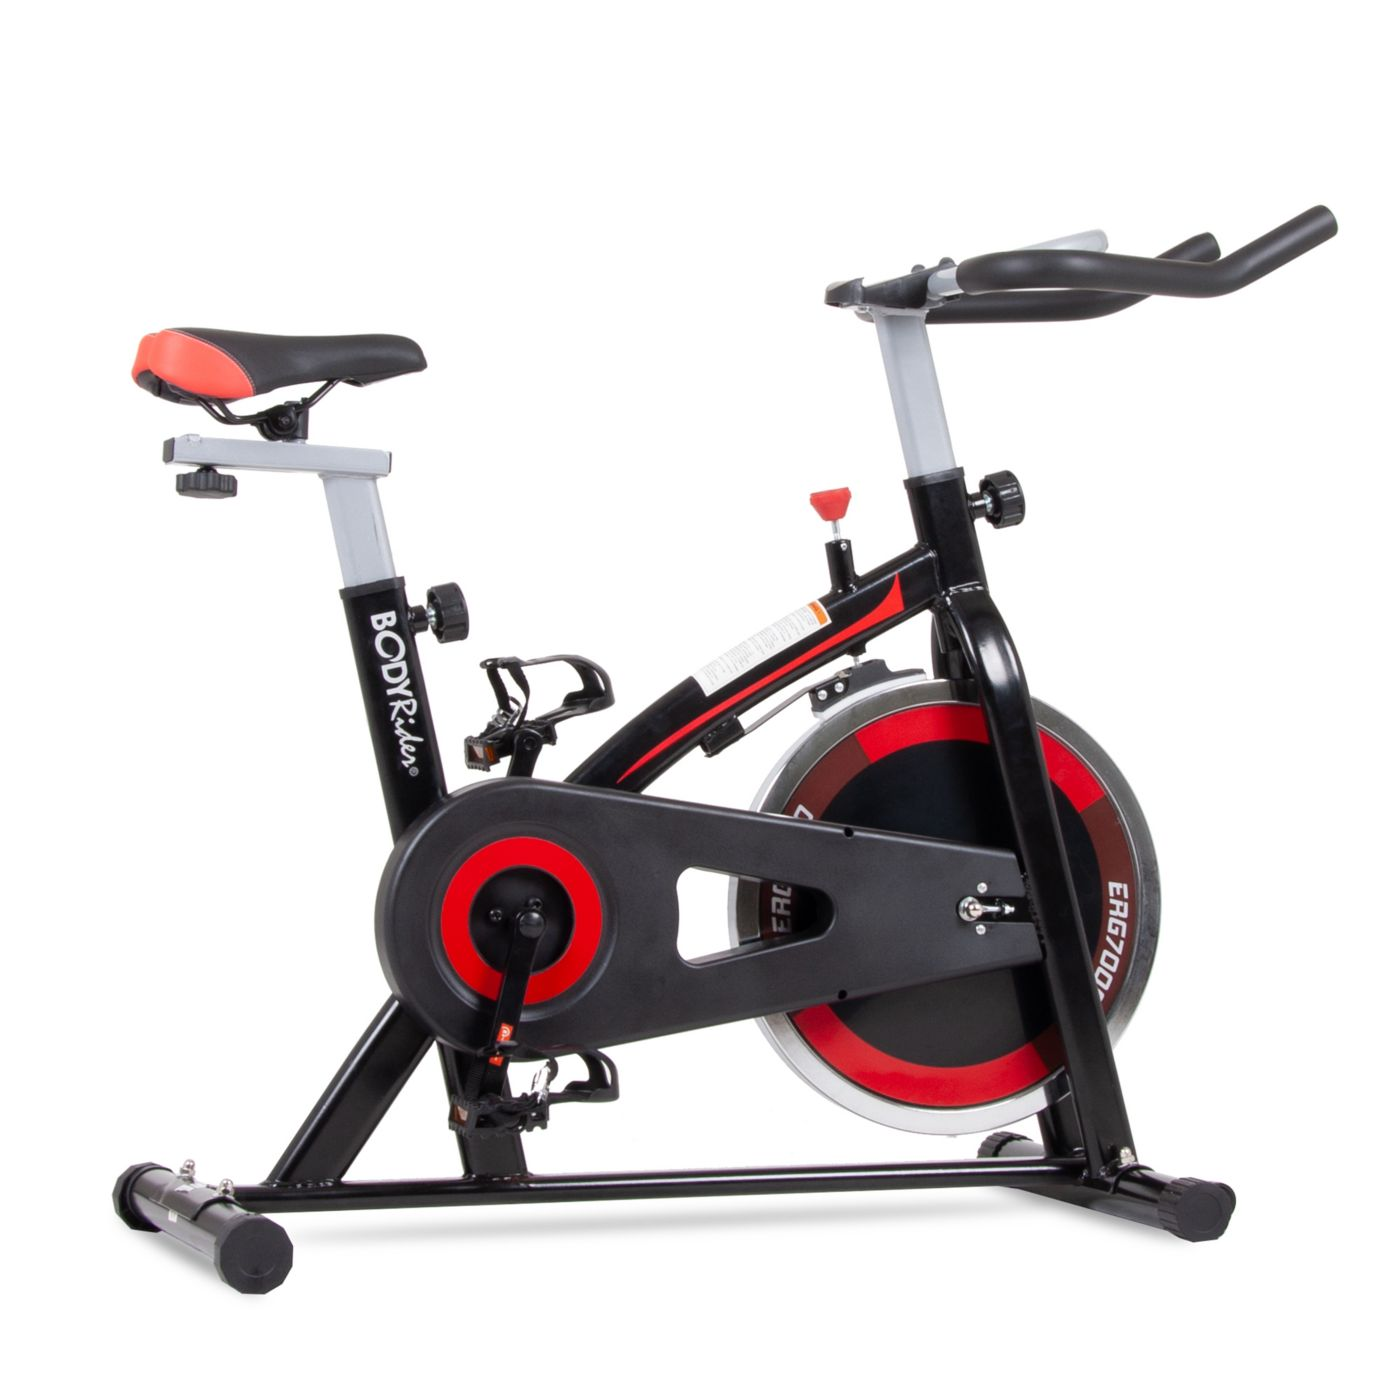 Body Rider Pro Cycle Trainer Upright Bike